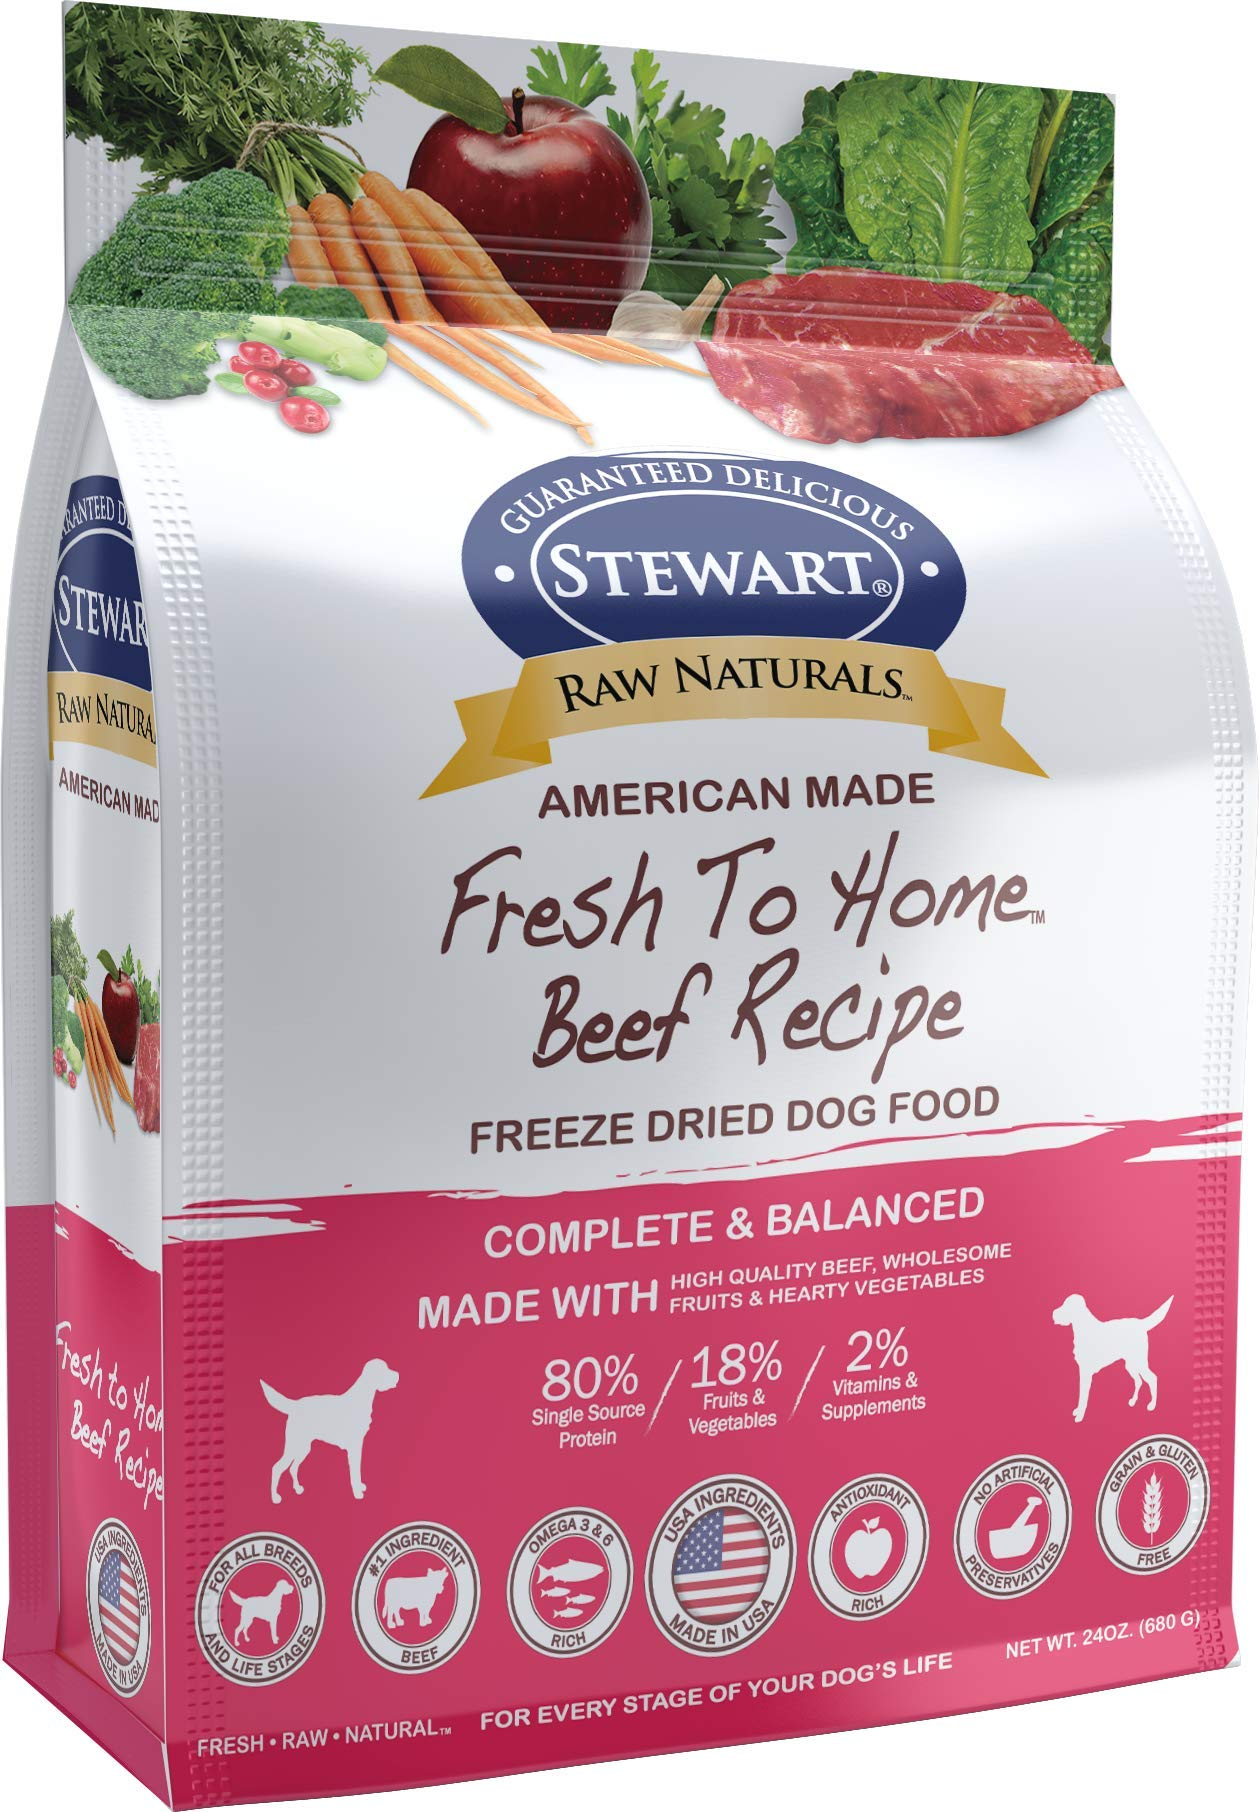 Stewart Raw Naturals Freeze Dried Dog Food Grain Free Made in USA with Beef, Fruits, & Vegetables for Fresh To Home All Natural Recipe, 24 oz. by Stewart